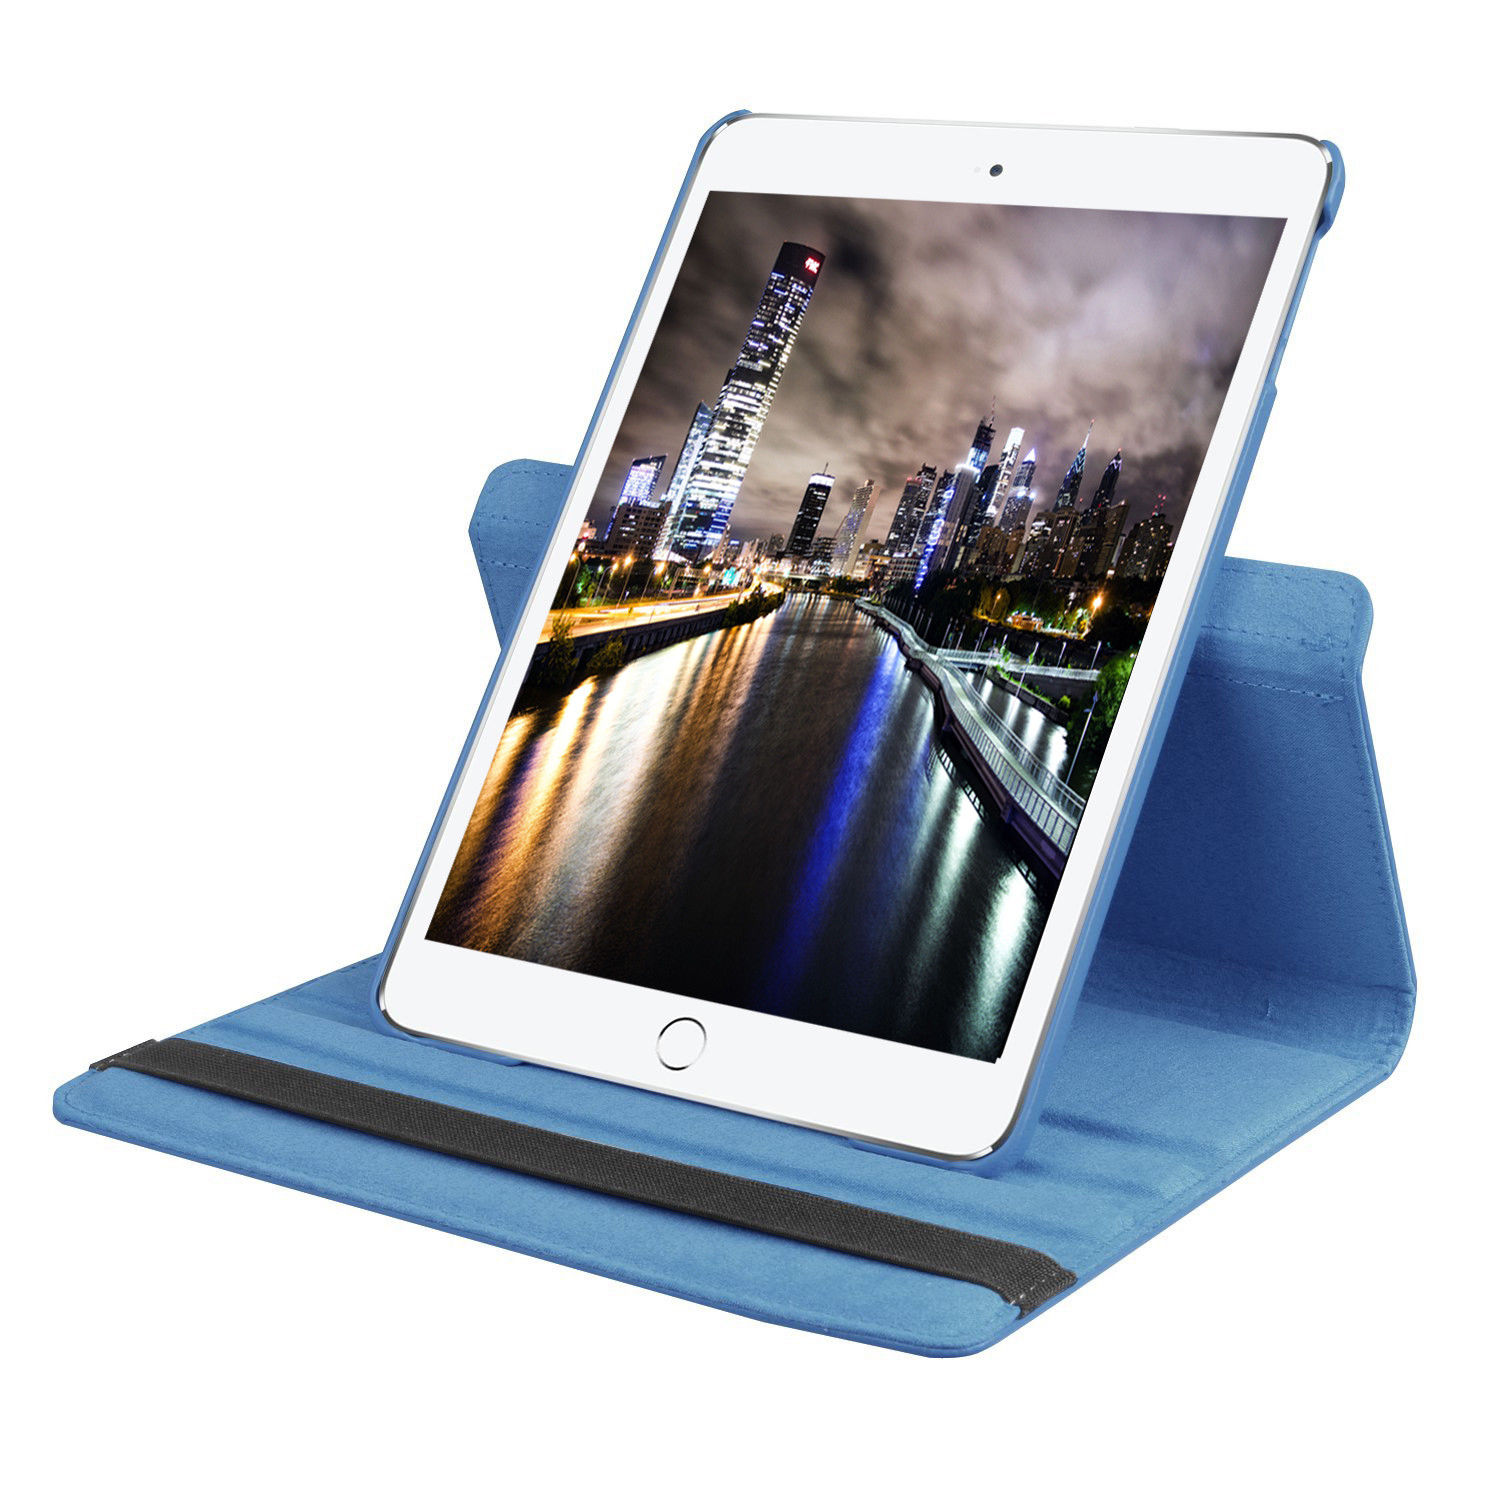 Custodia-per-Apple-iPad-Pro-2017-iPad-Air-3-10-5-Smart-Cover-Case-Custodia-Protettiva miniatura 55